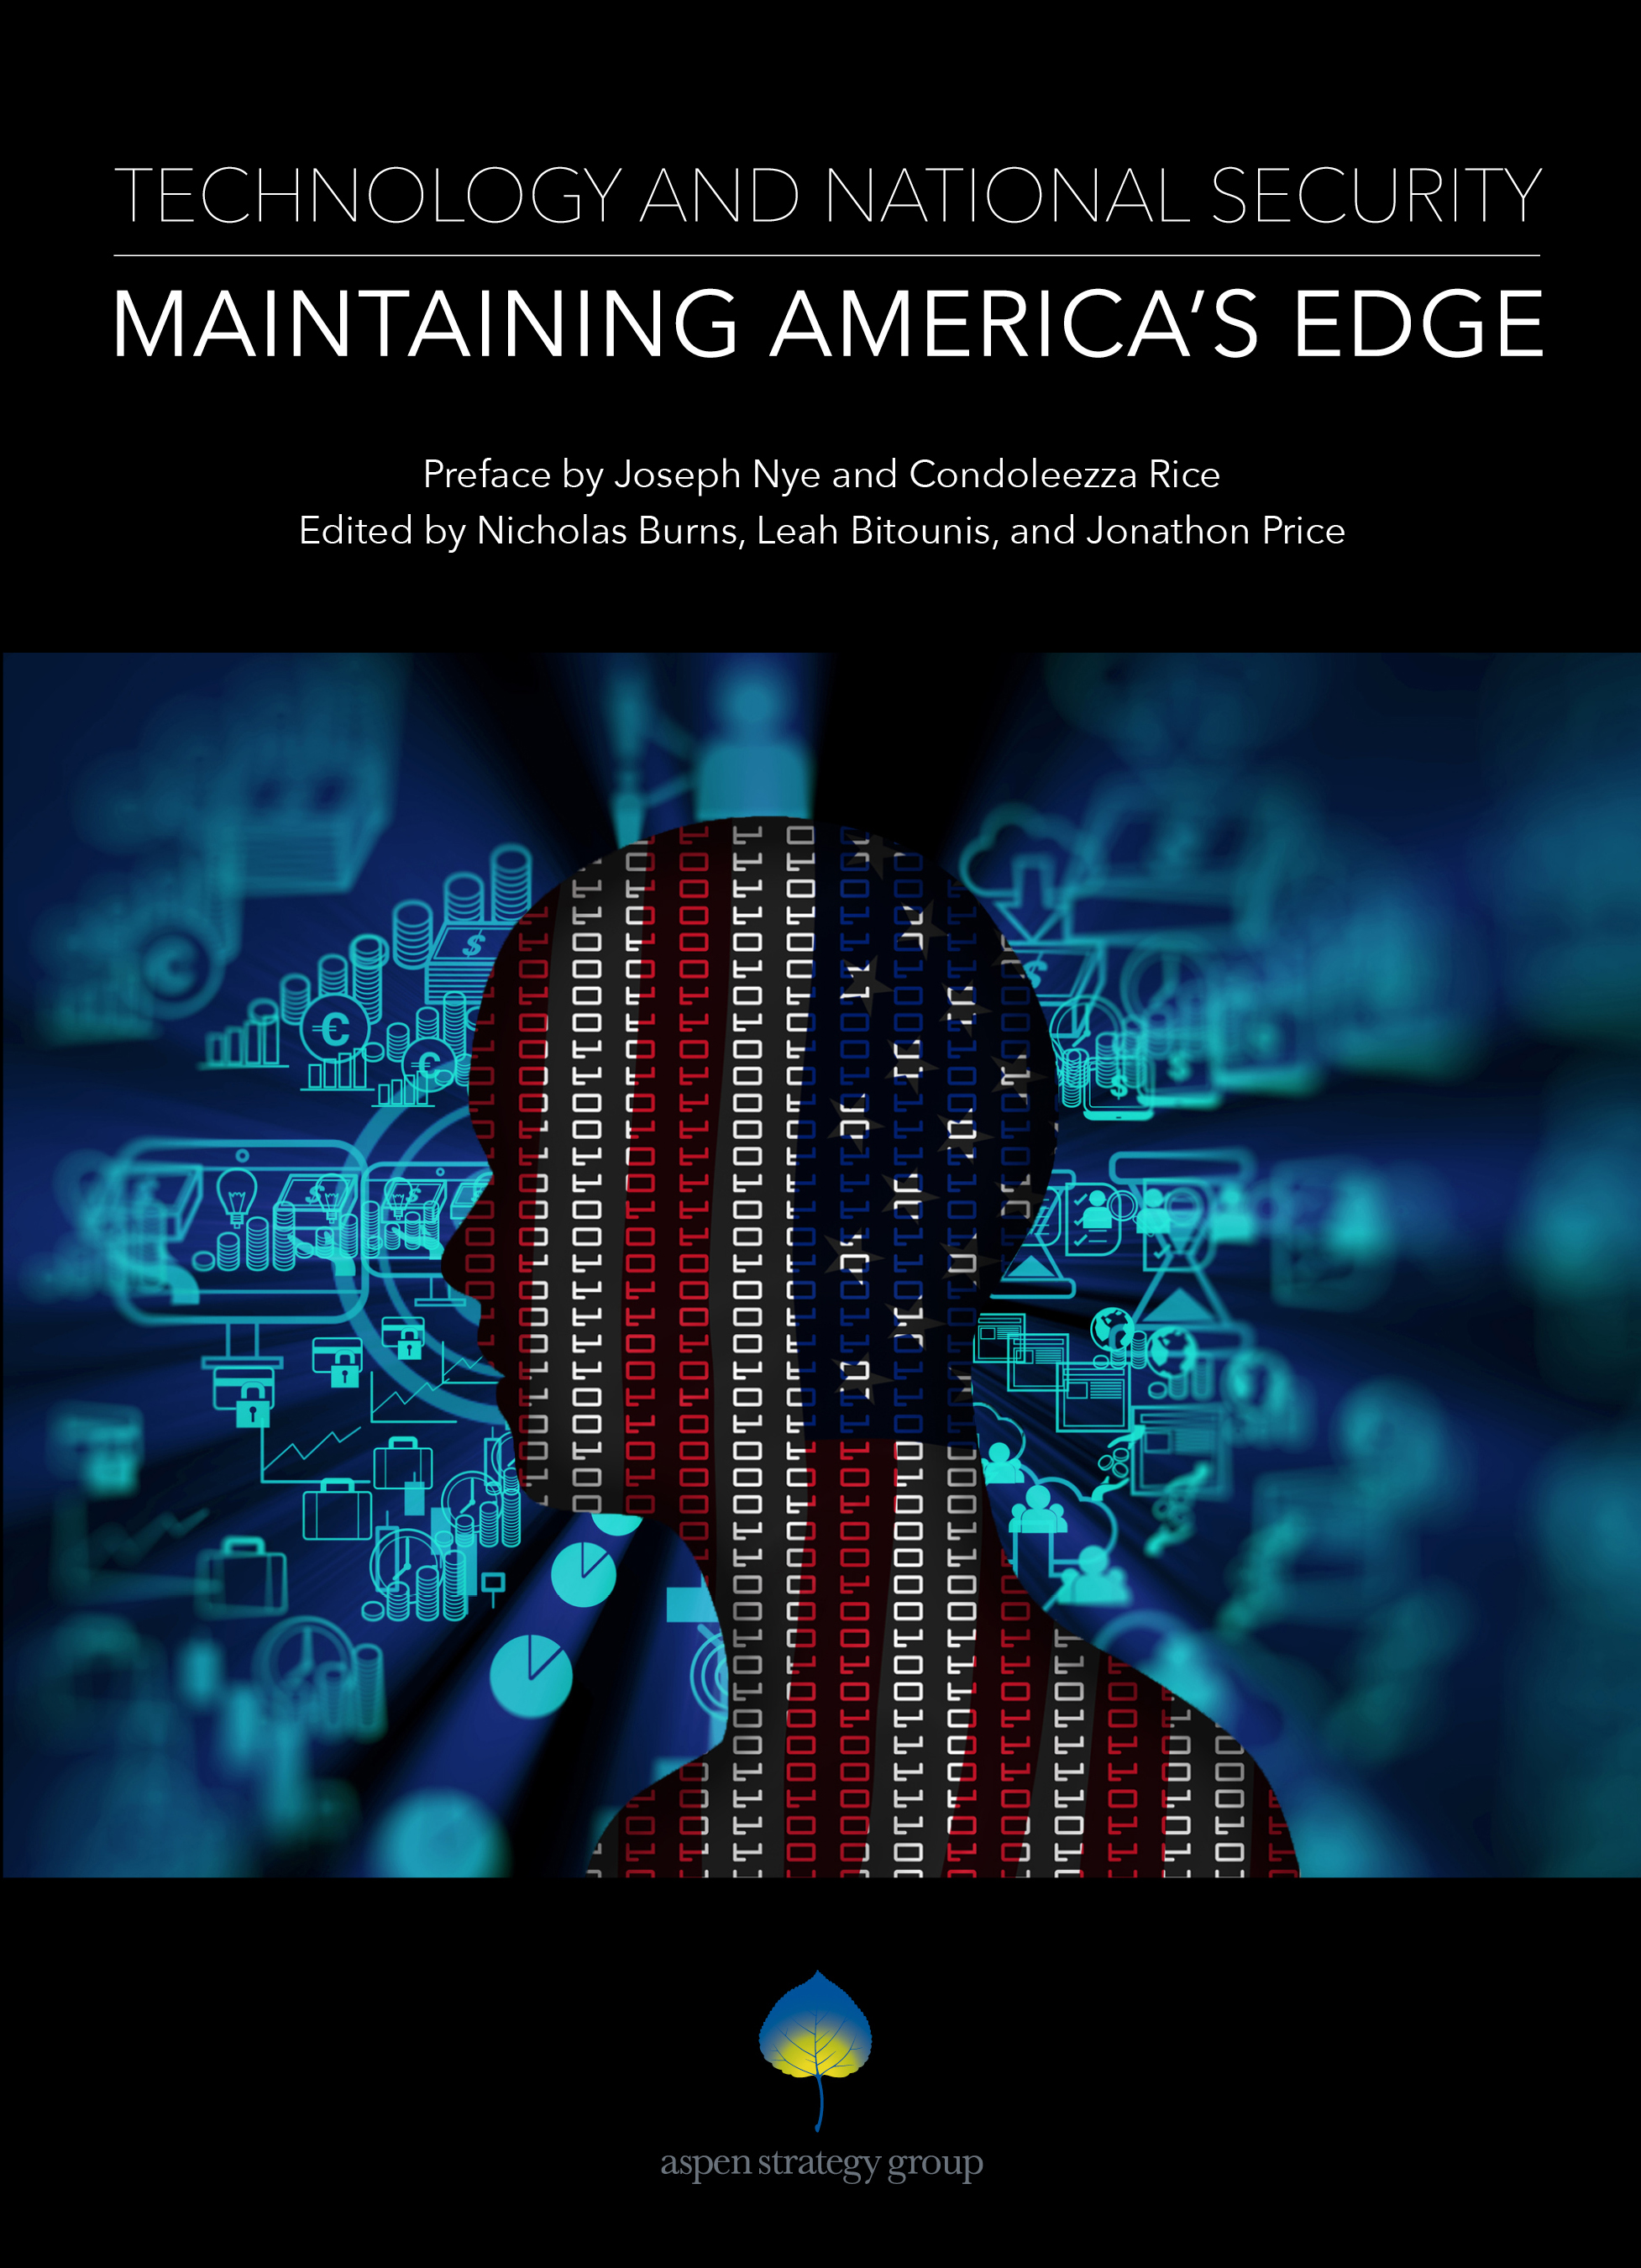 Technology & National Security: Maintaining America's Edge - This edition is a collection of papers commissioned for the 2018 Aspen Strategy Group Summer Workshop, a bipartisan meeting of national security experts, academics, private sector leaders, and technologists. The chapters in this volume evaluate the disruptive nature of technological change on the US military, economic power, and democratic governance. They highlight possible avenues for US defense modernization, the impact of disinformation tactics and hybrid warfare on democratic institutions, and the need for a reinvigorated innovation triangle comprised of the US government, academia, and private corporations. The final chapter offers practical recommendations to meet the daunting challenges this technological era imposes.